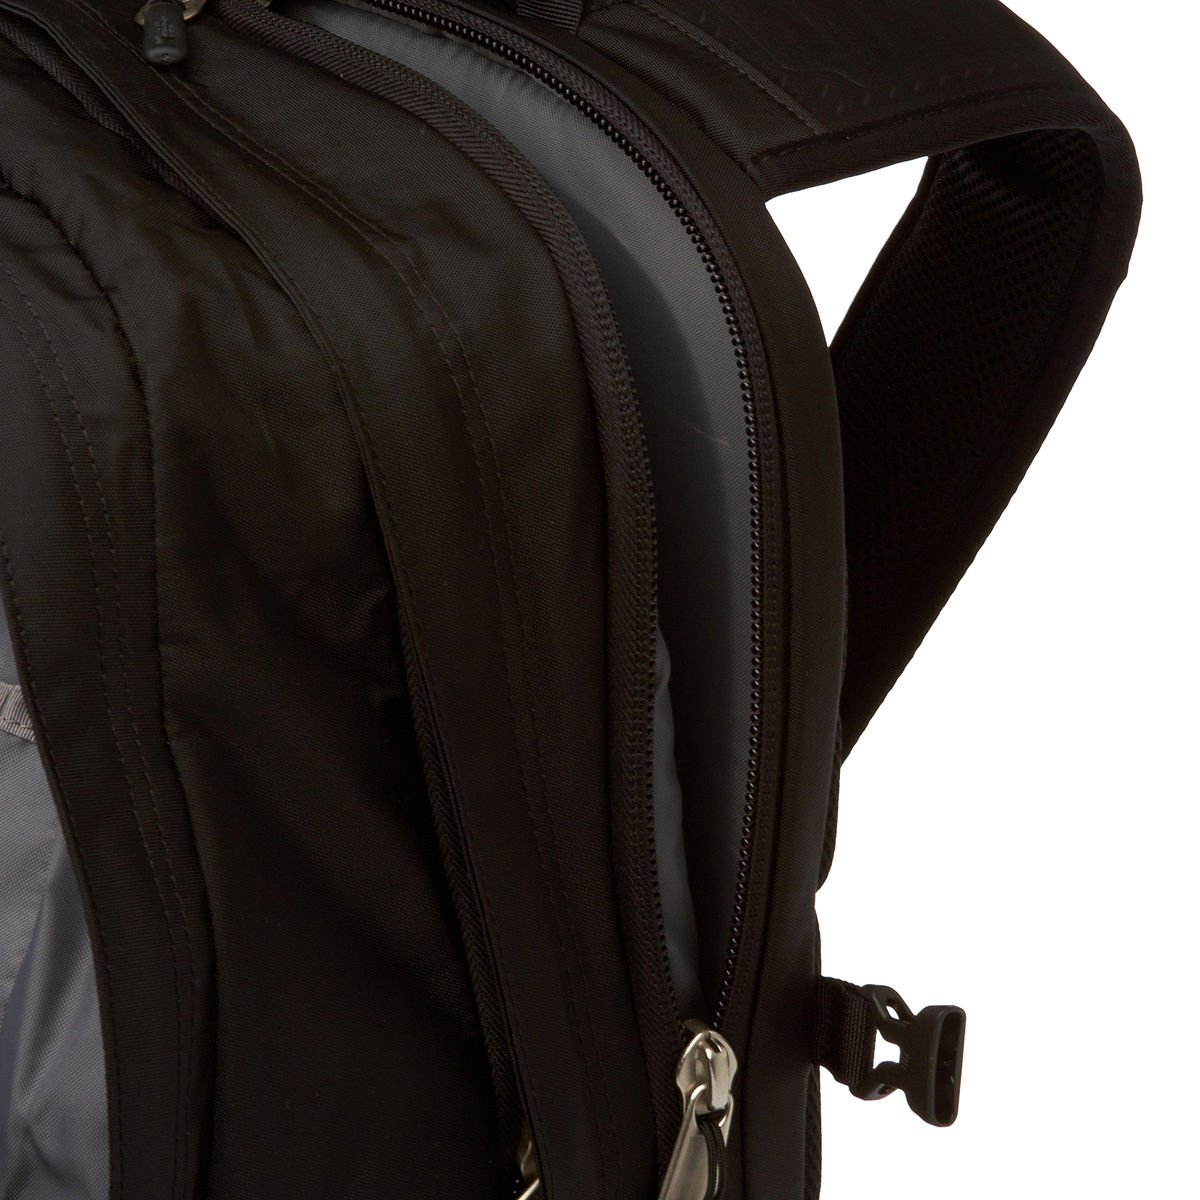 8eb20b51d Final thoughts: The North Face Surge II is the reigning king for a reason.  It is a solid and dependable travel backpack that won't leave you high and  dry ...